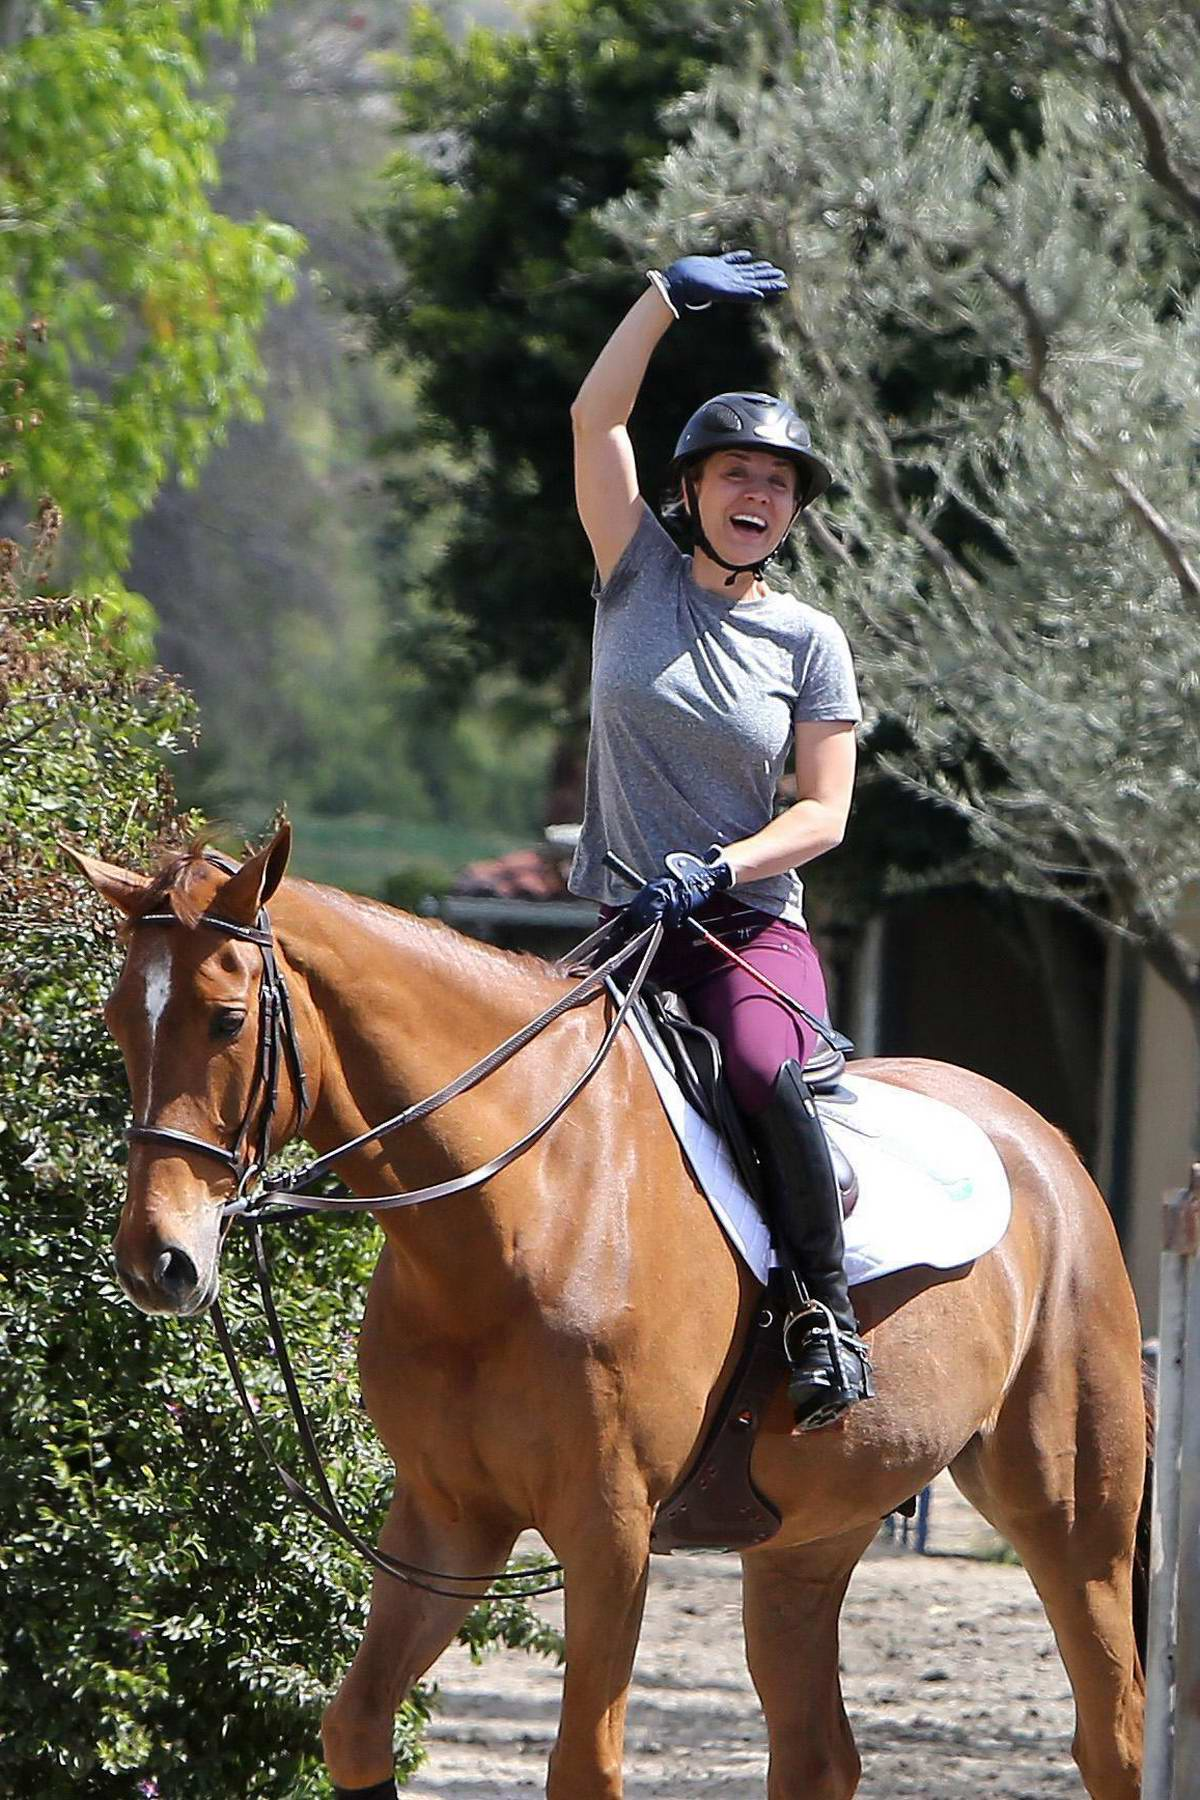 Kaley Cuoco looked in a cheery mood during a horse riding session in Los Angeles